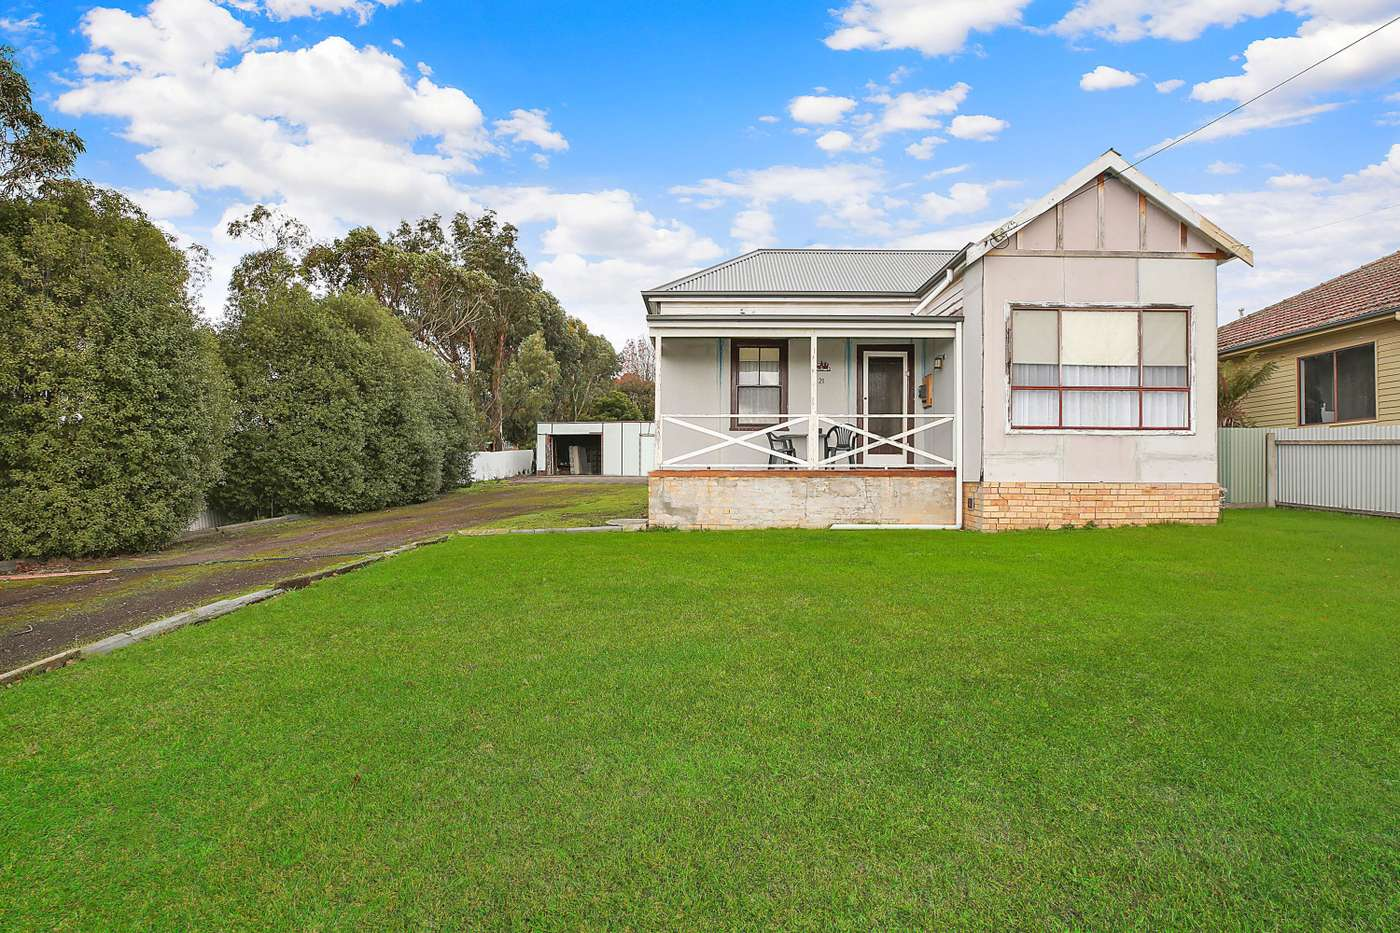 Main view of Homely house listing, 21 Henderson Street, Camperdown, VIC 3260